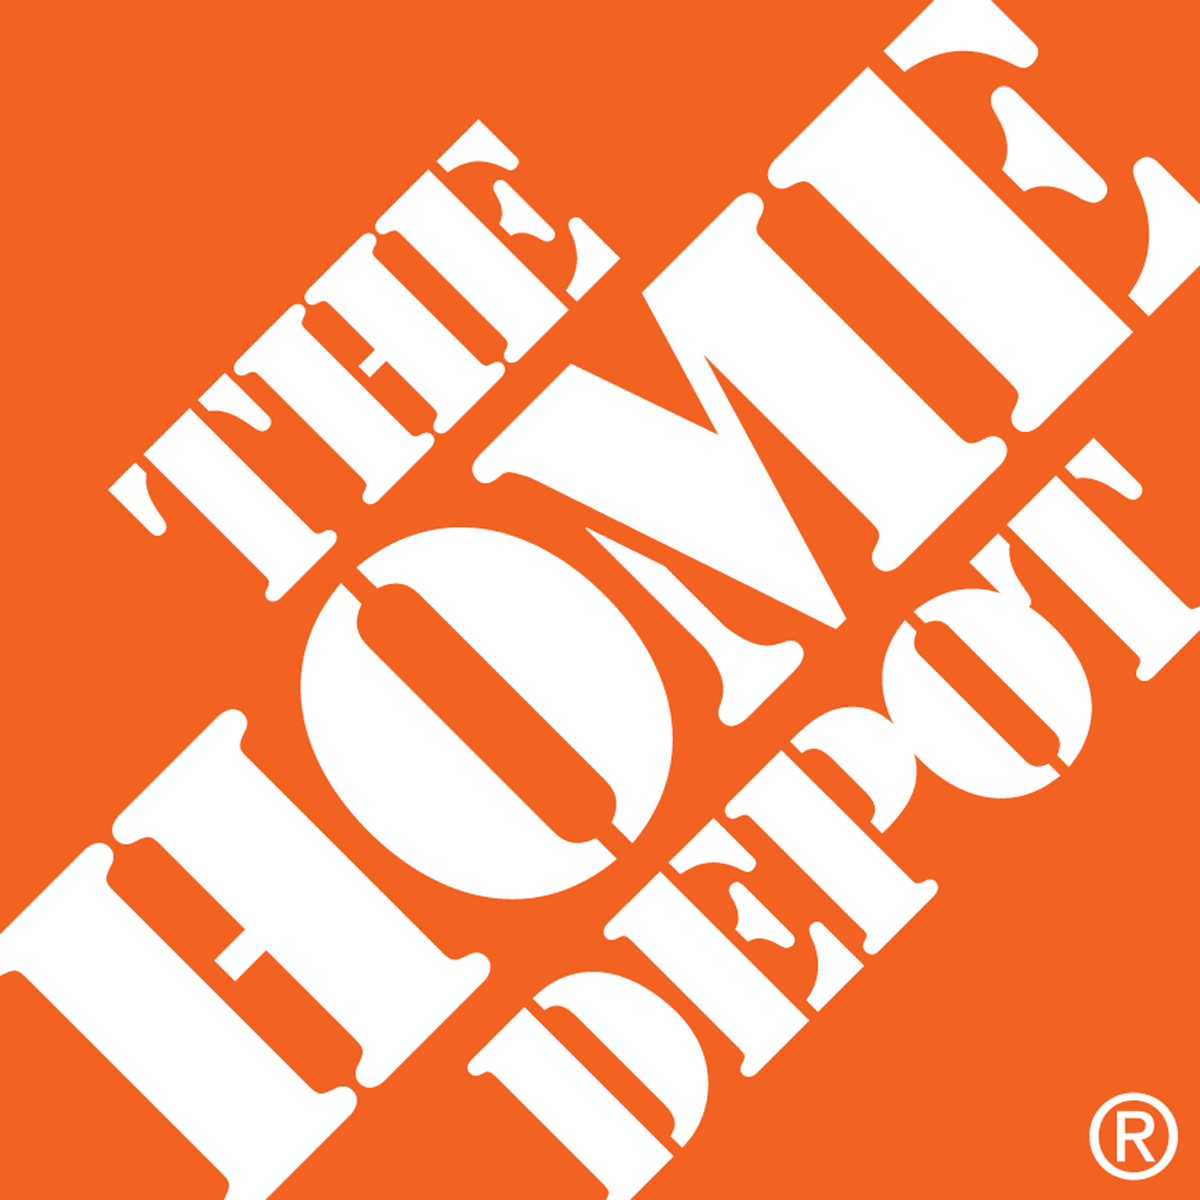 20' Ladder Home Depot 40 Off Home Depot Promo Codes Deals 2019 Savings